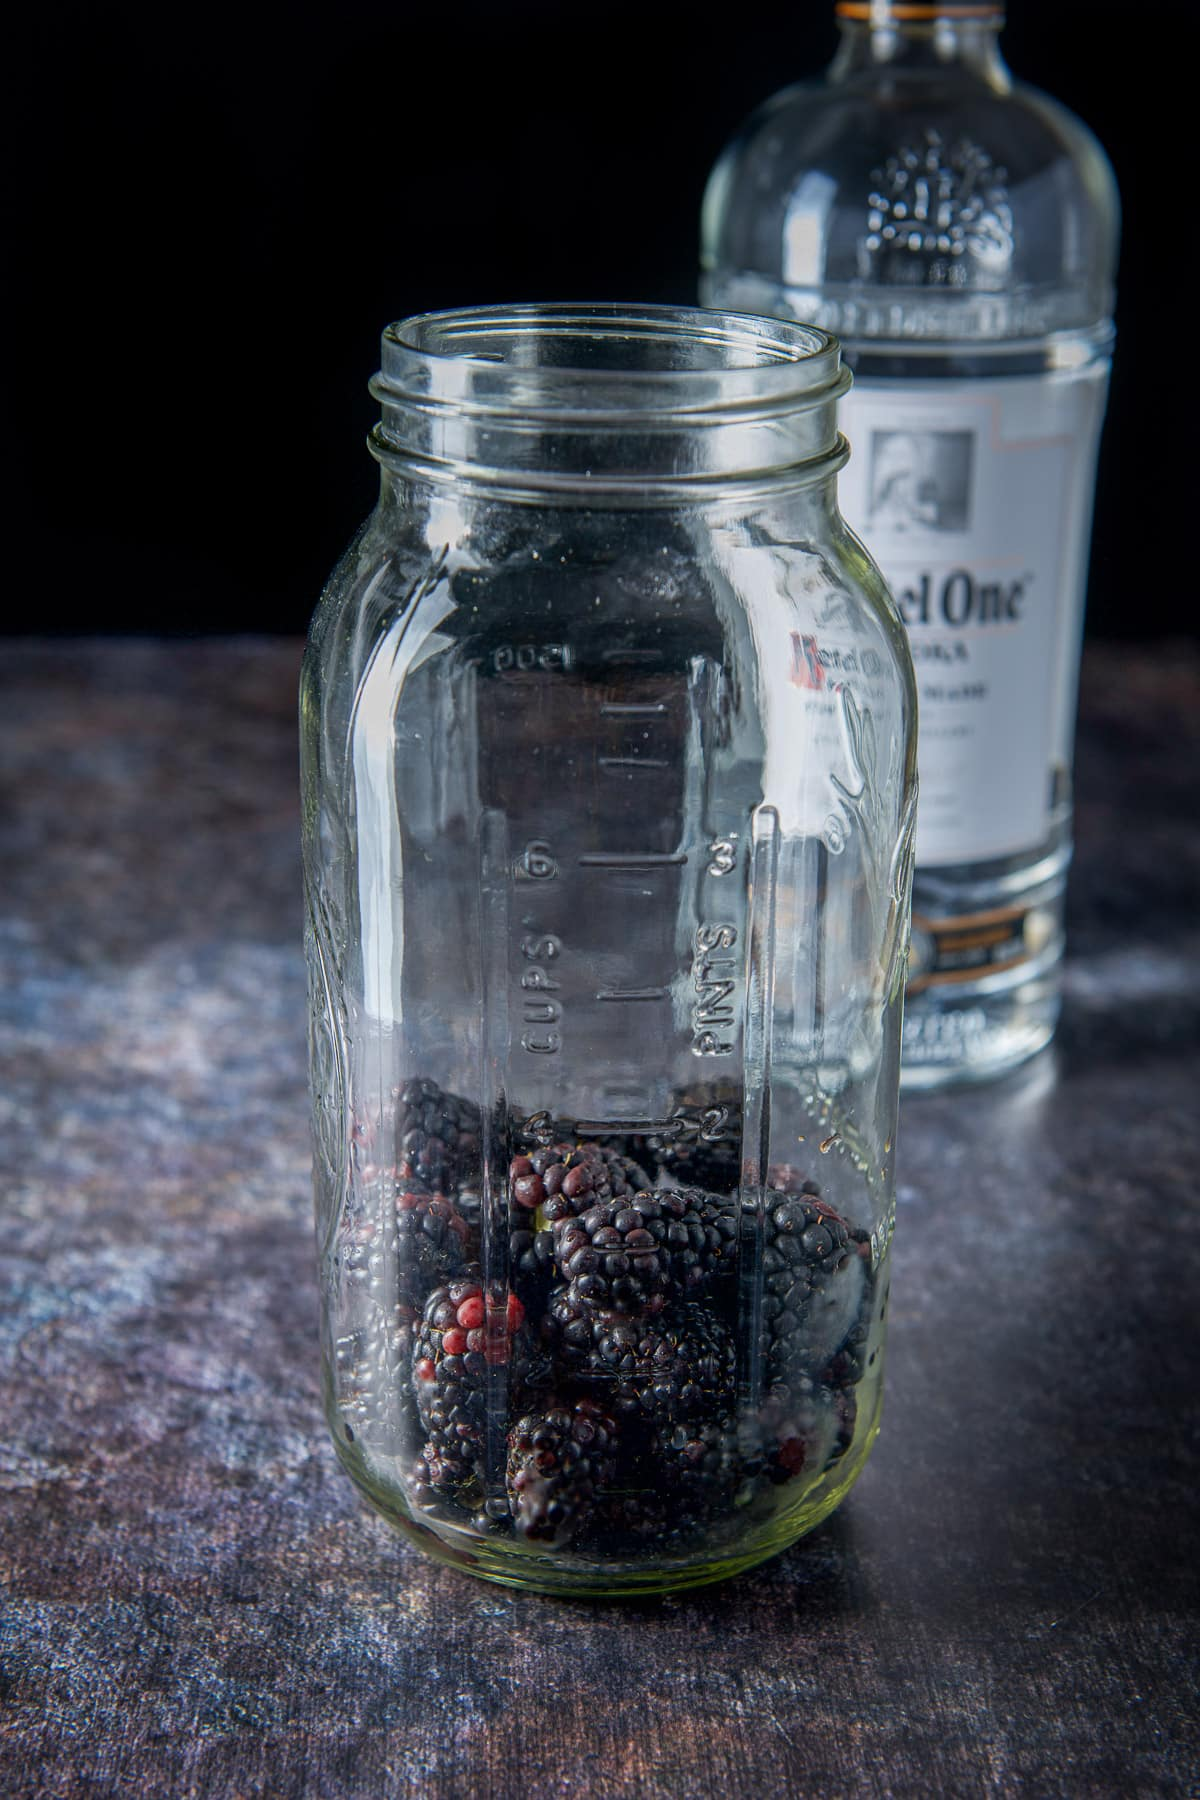 blackberries in a large jar with a bottle of vodka in the background